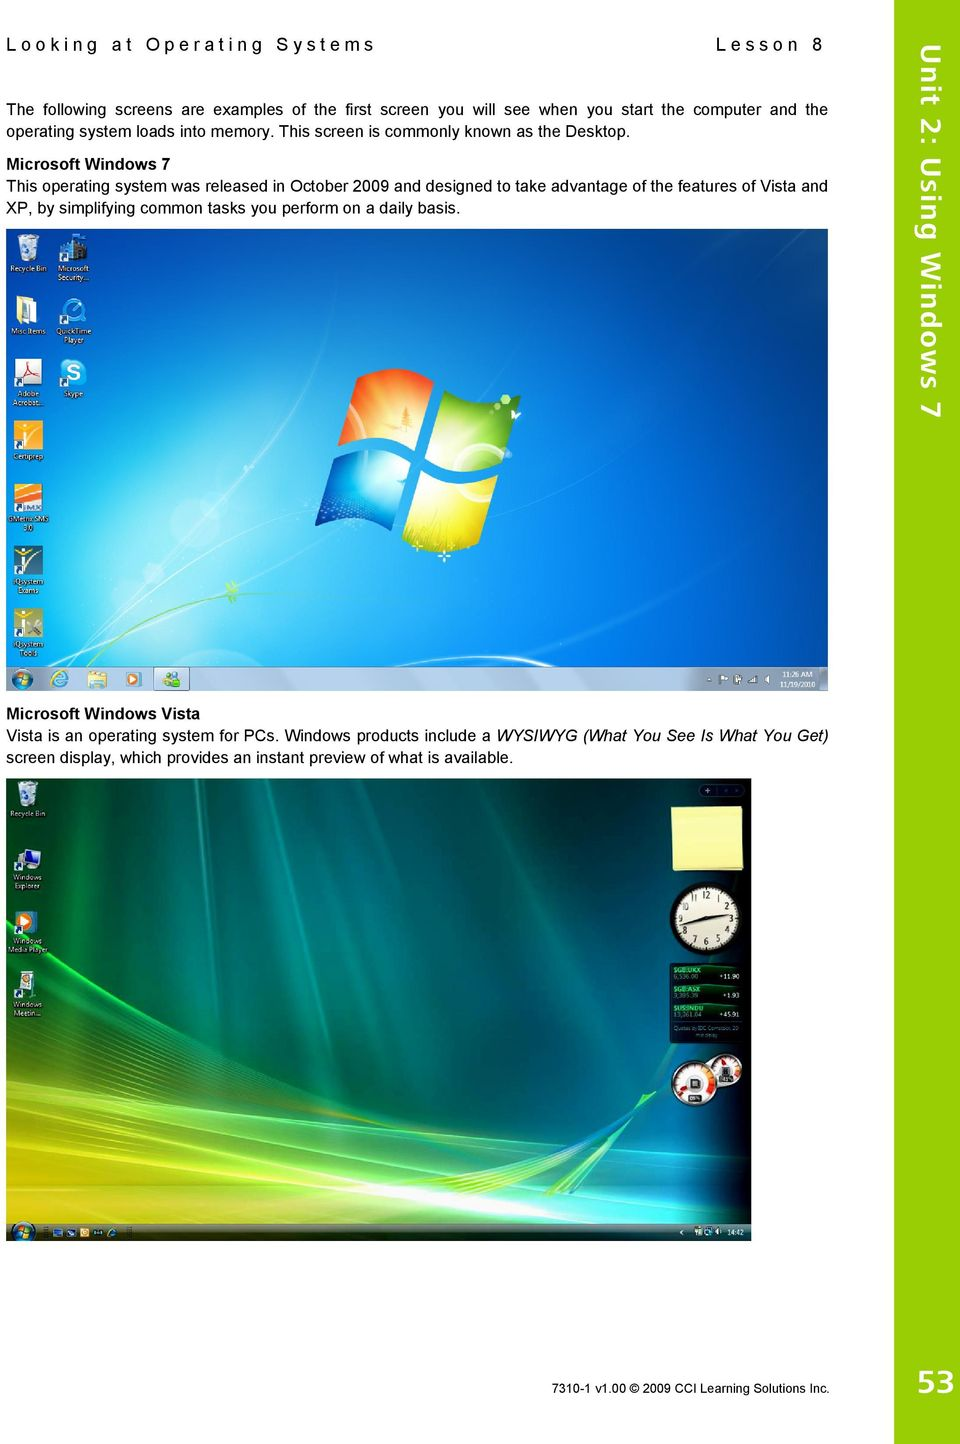 Microsoft Windows 7 This operating system was released in October 2009 and designed to take advantage of the features of Vista and XP, by simplifying common tasks you